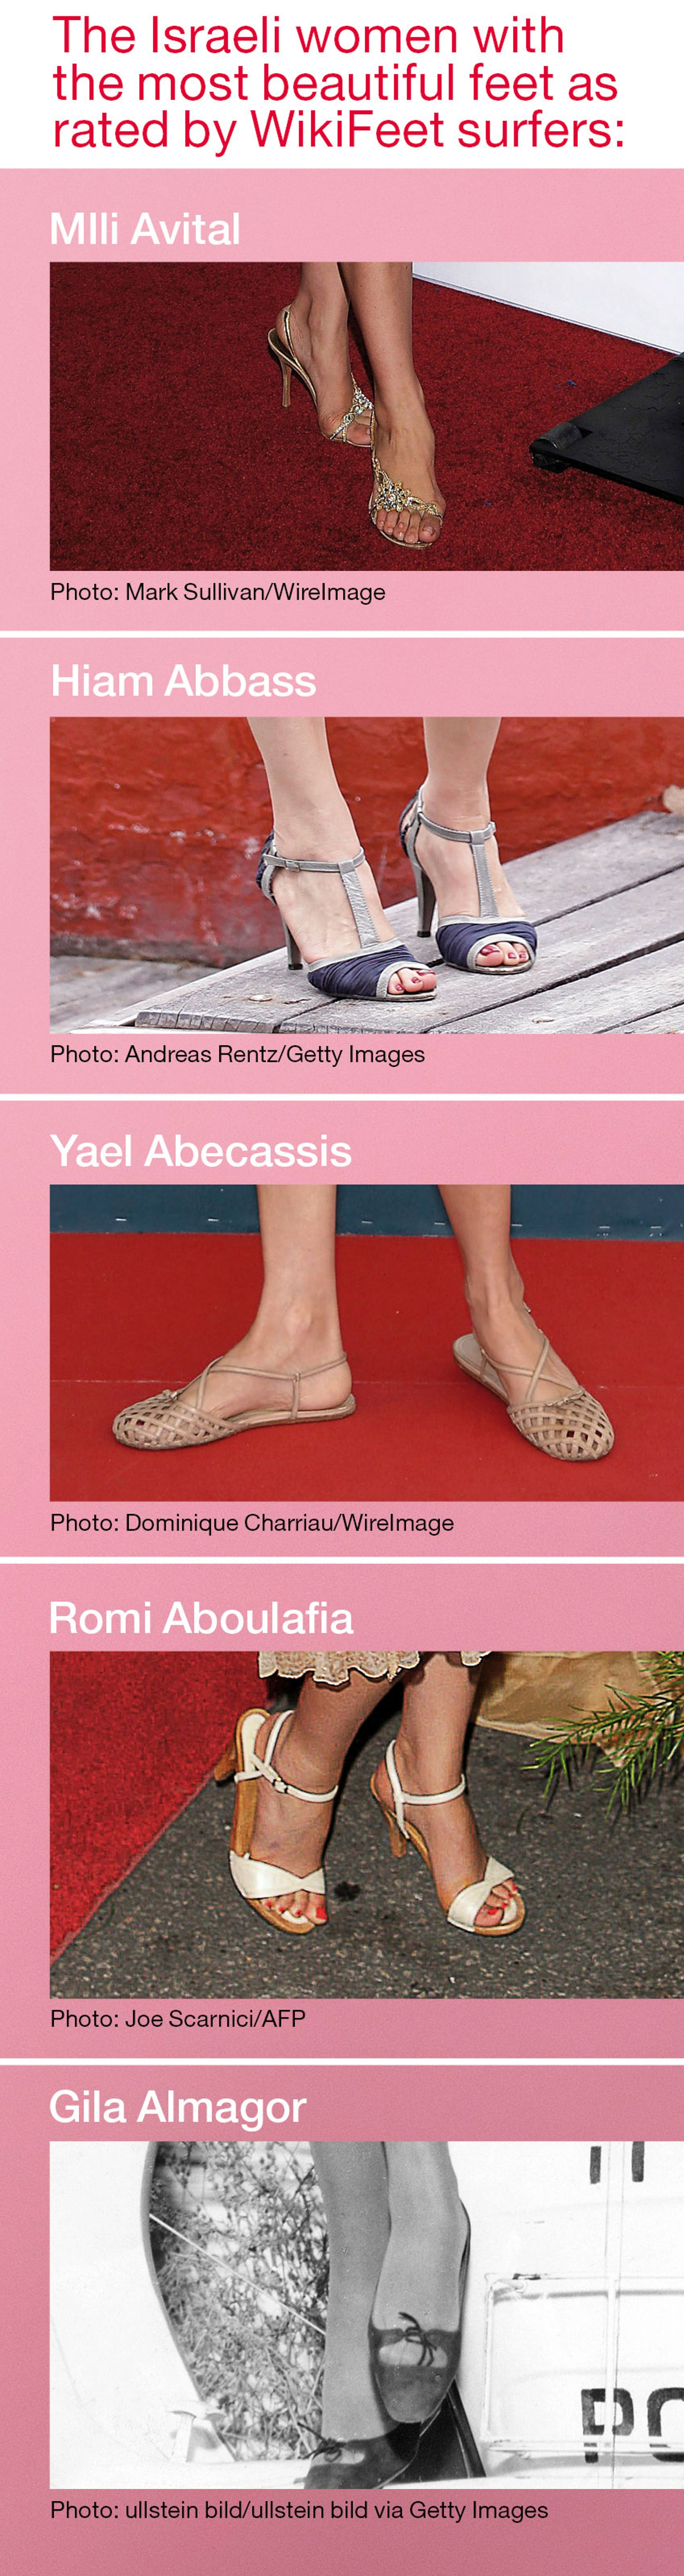 The Israeli women with the most beautiful feet as rated by WikiFeet surfers: Natalie Portman